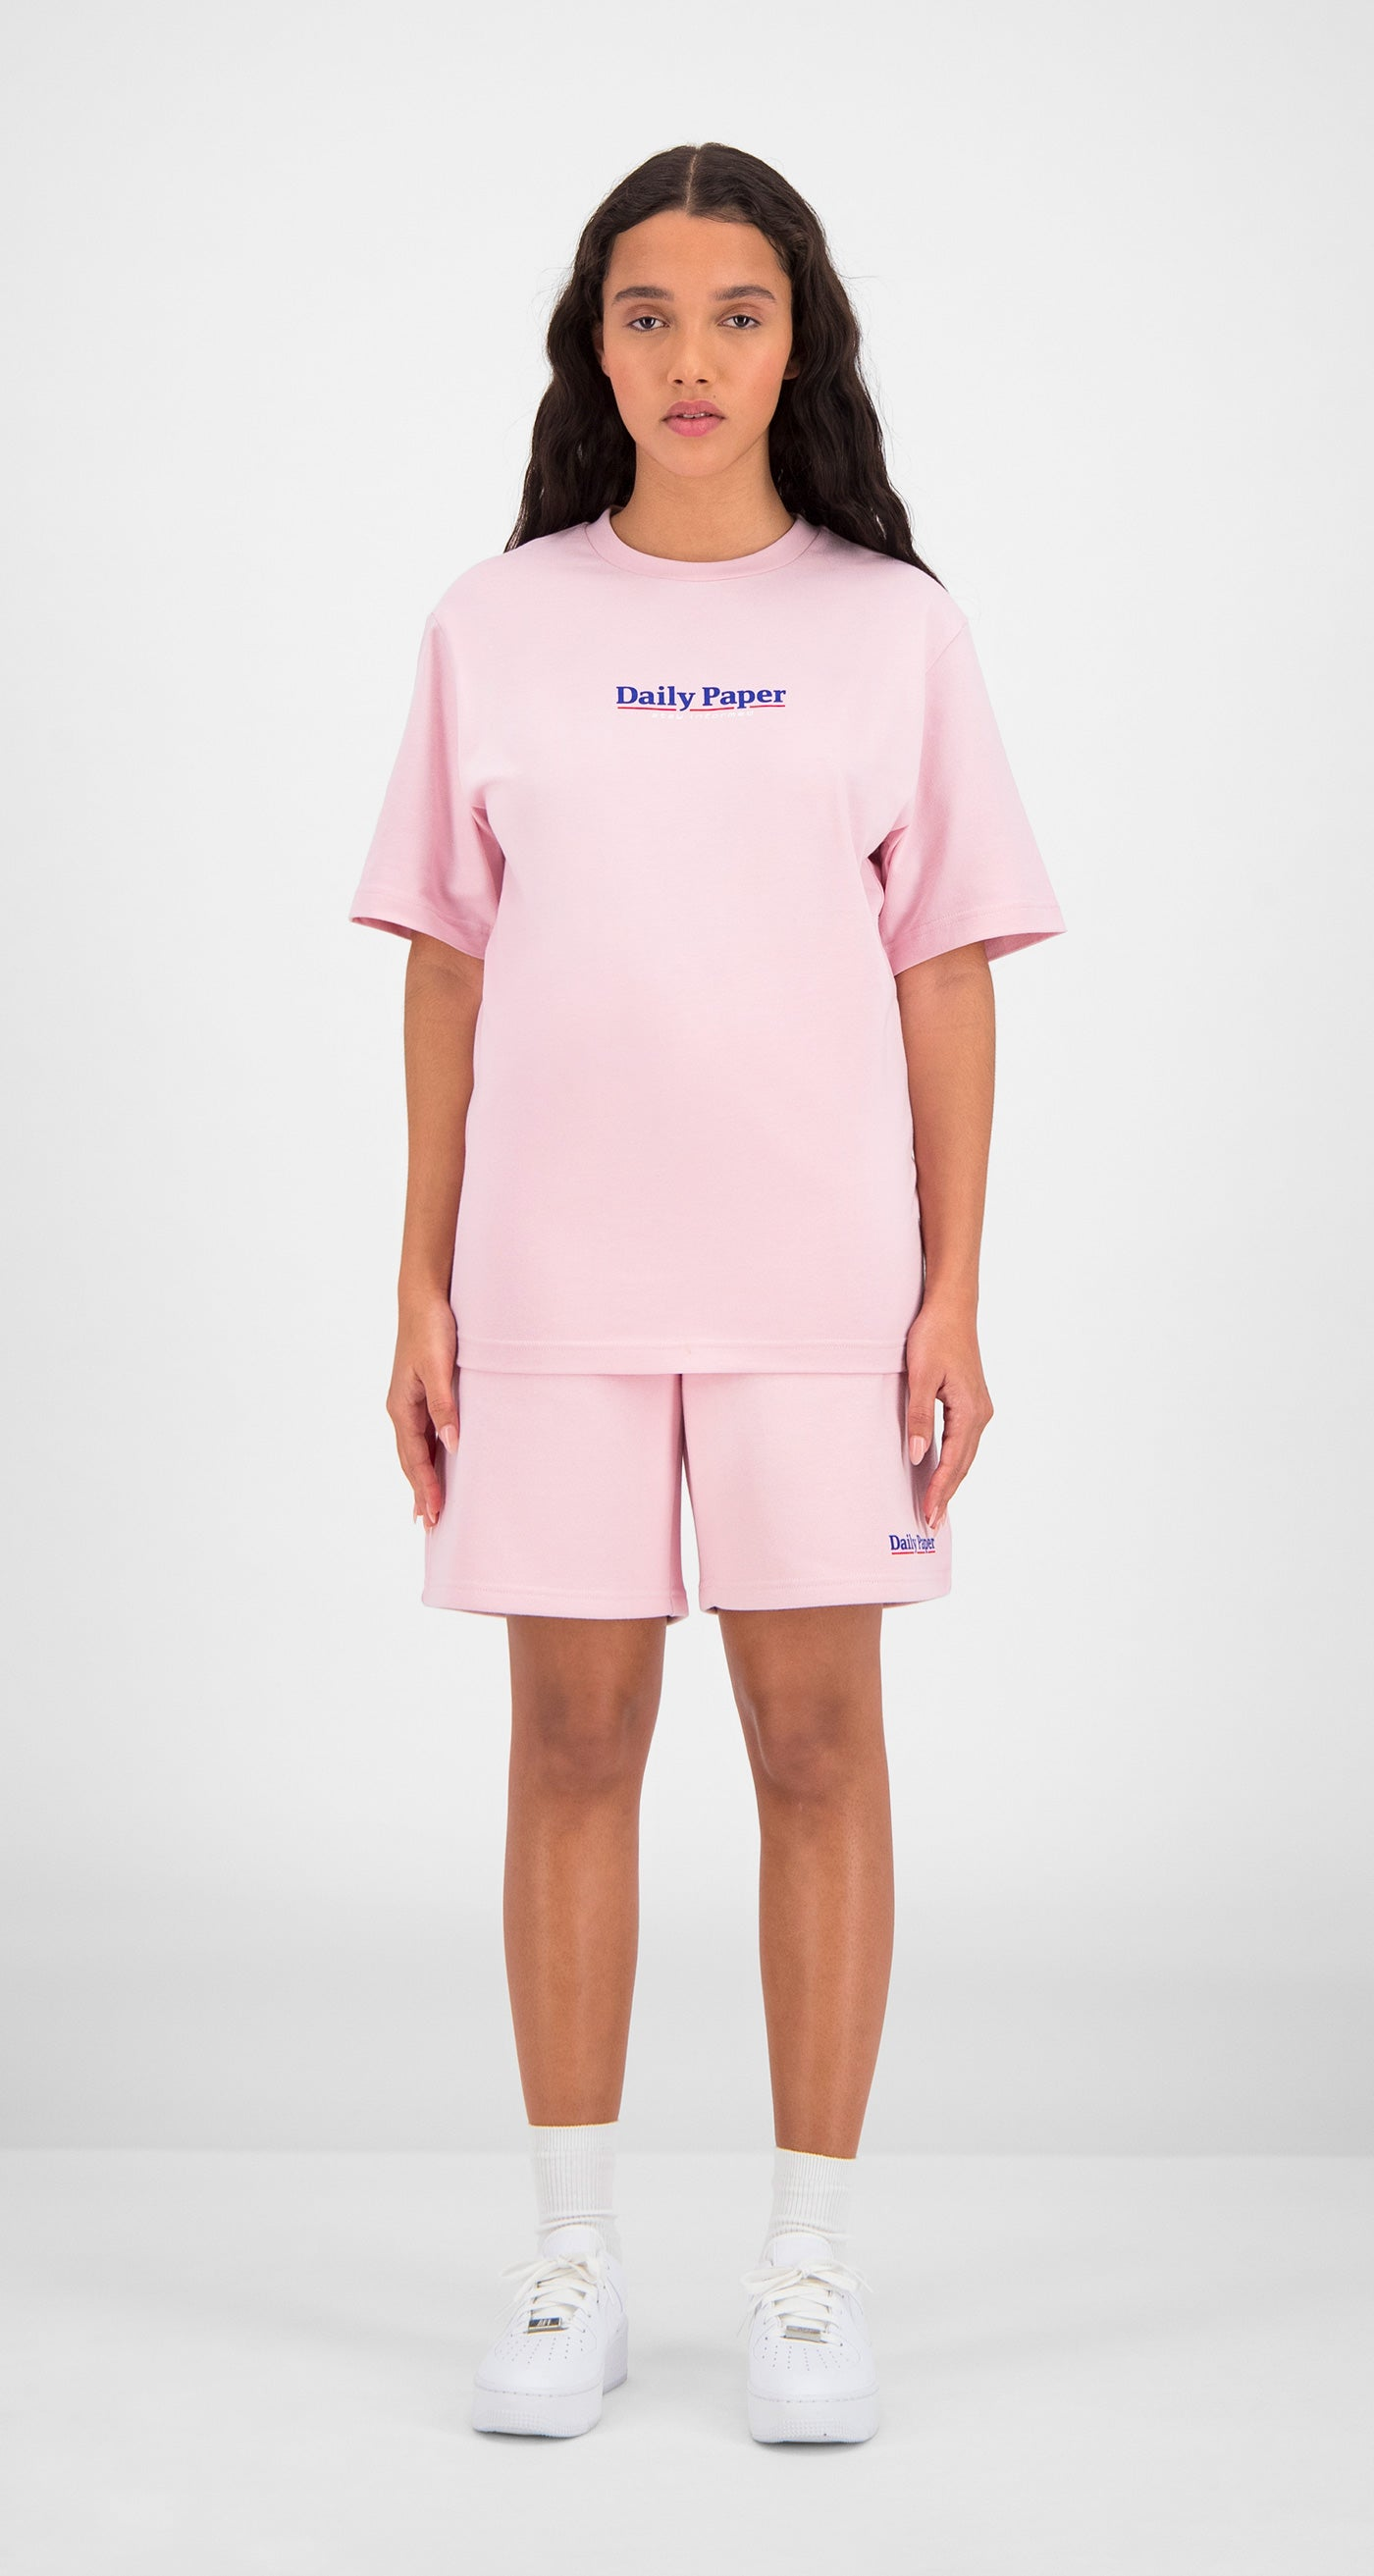 Daily Paper - Pink Essential T-Shirt Women Front